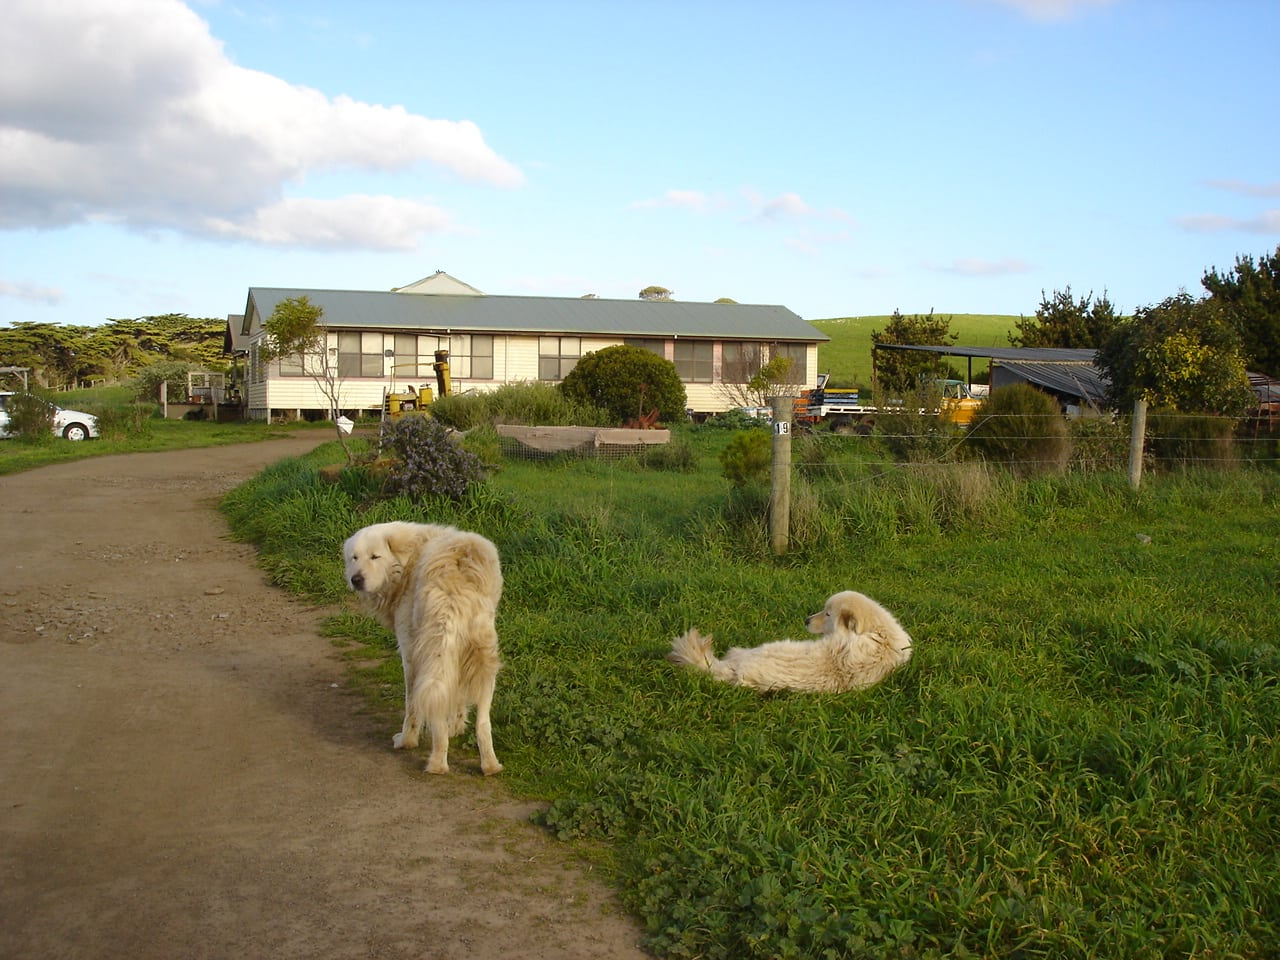 Dogs on guard.